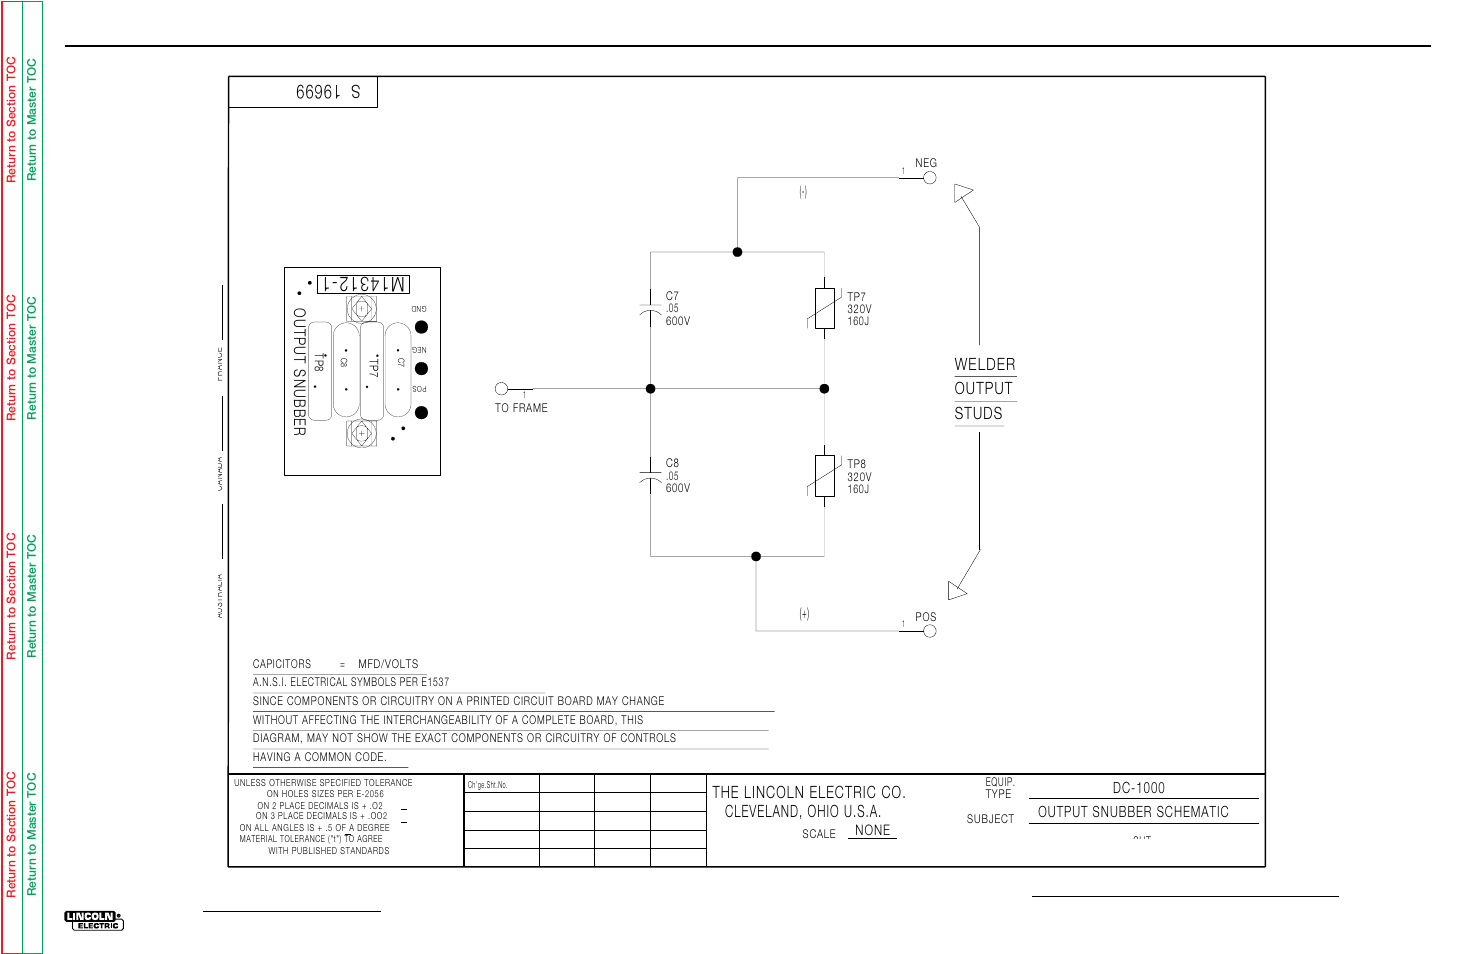 Electrical Diagrams Lincoln Electric Idealarc Dc 1000 Svm123 A Common Symbols User Manual Page 113